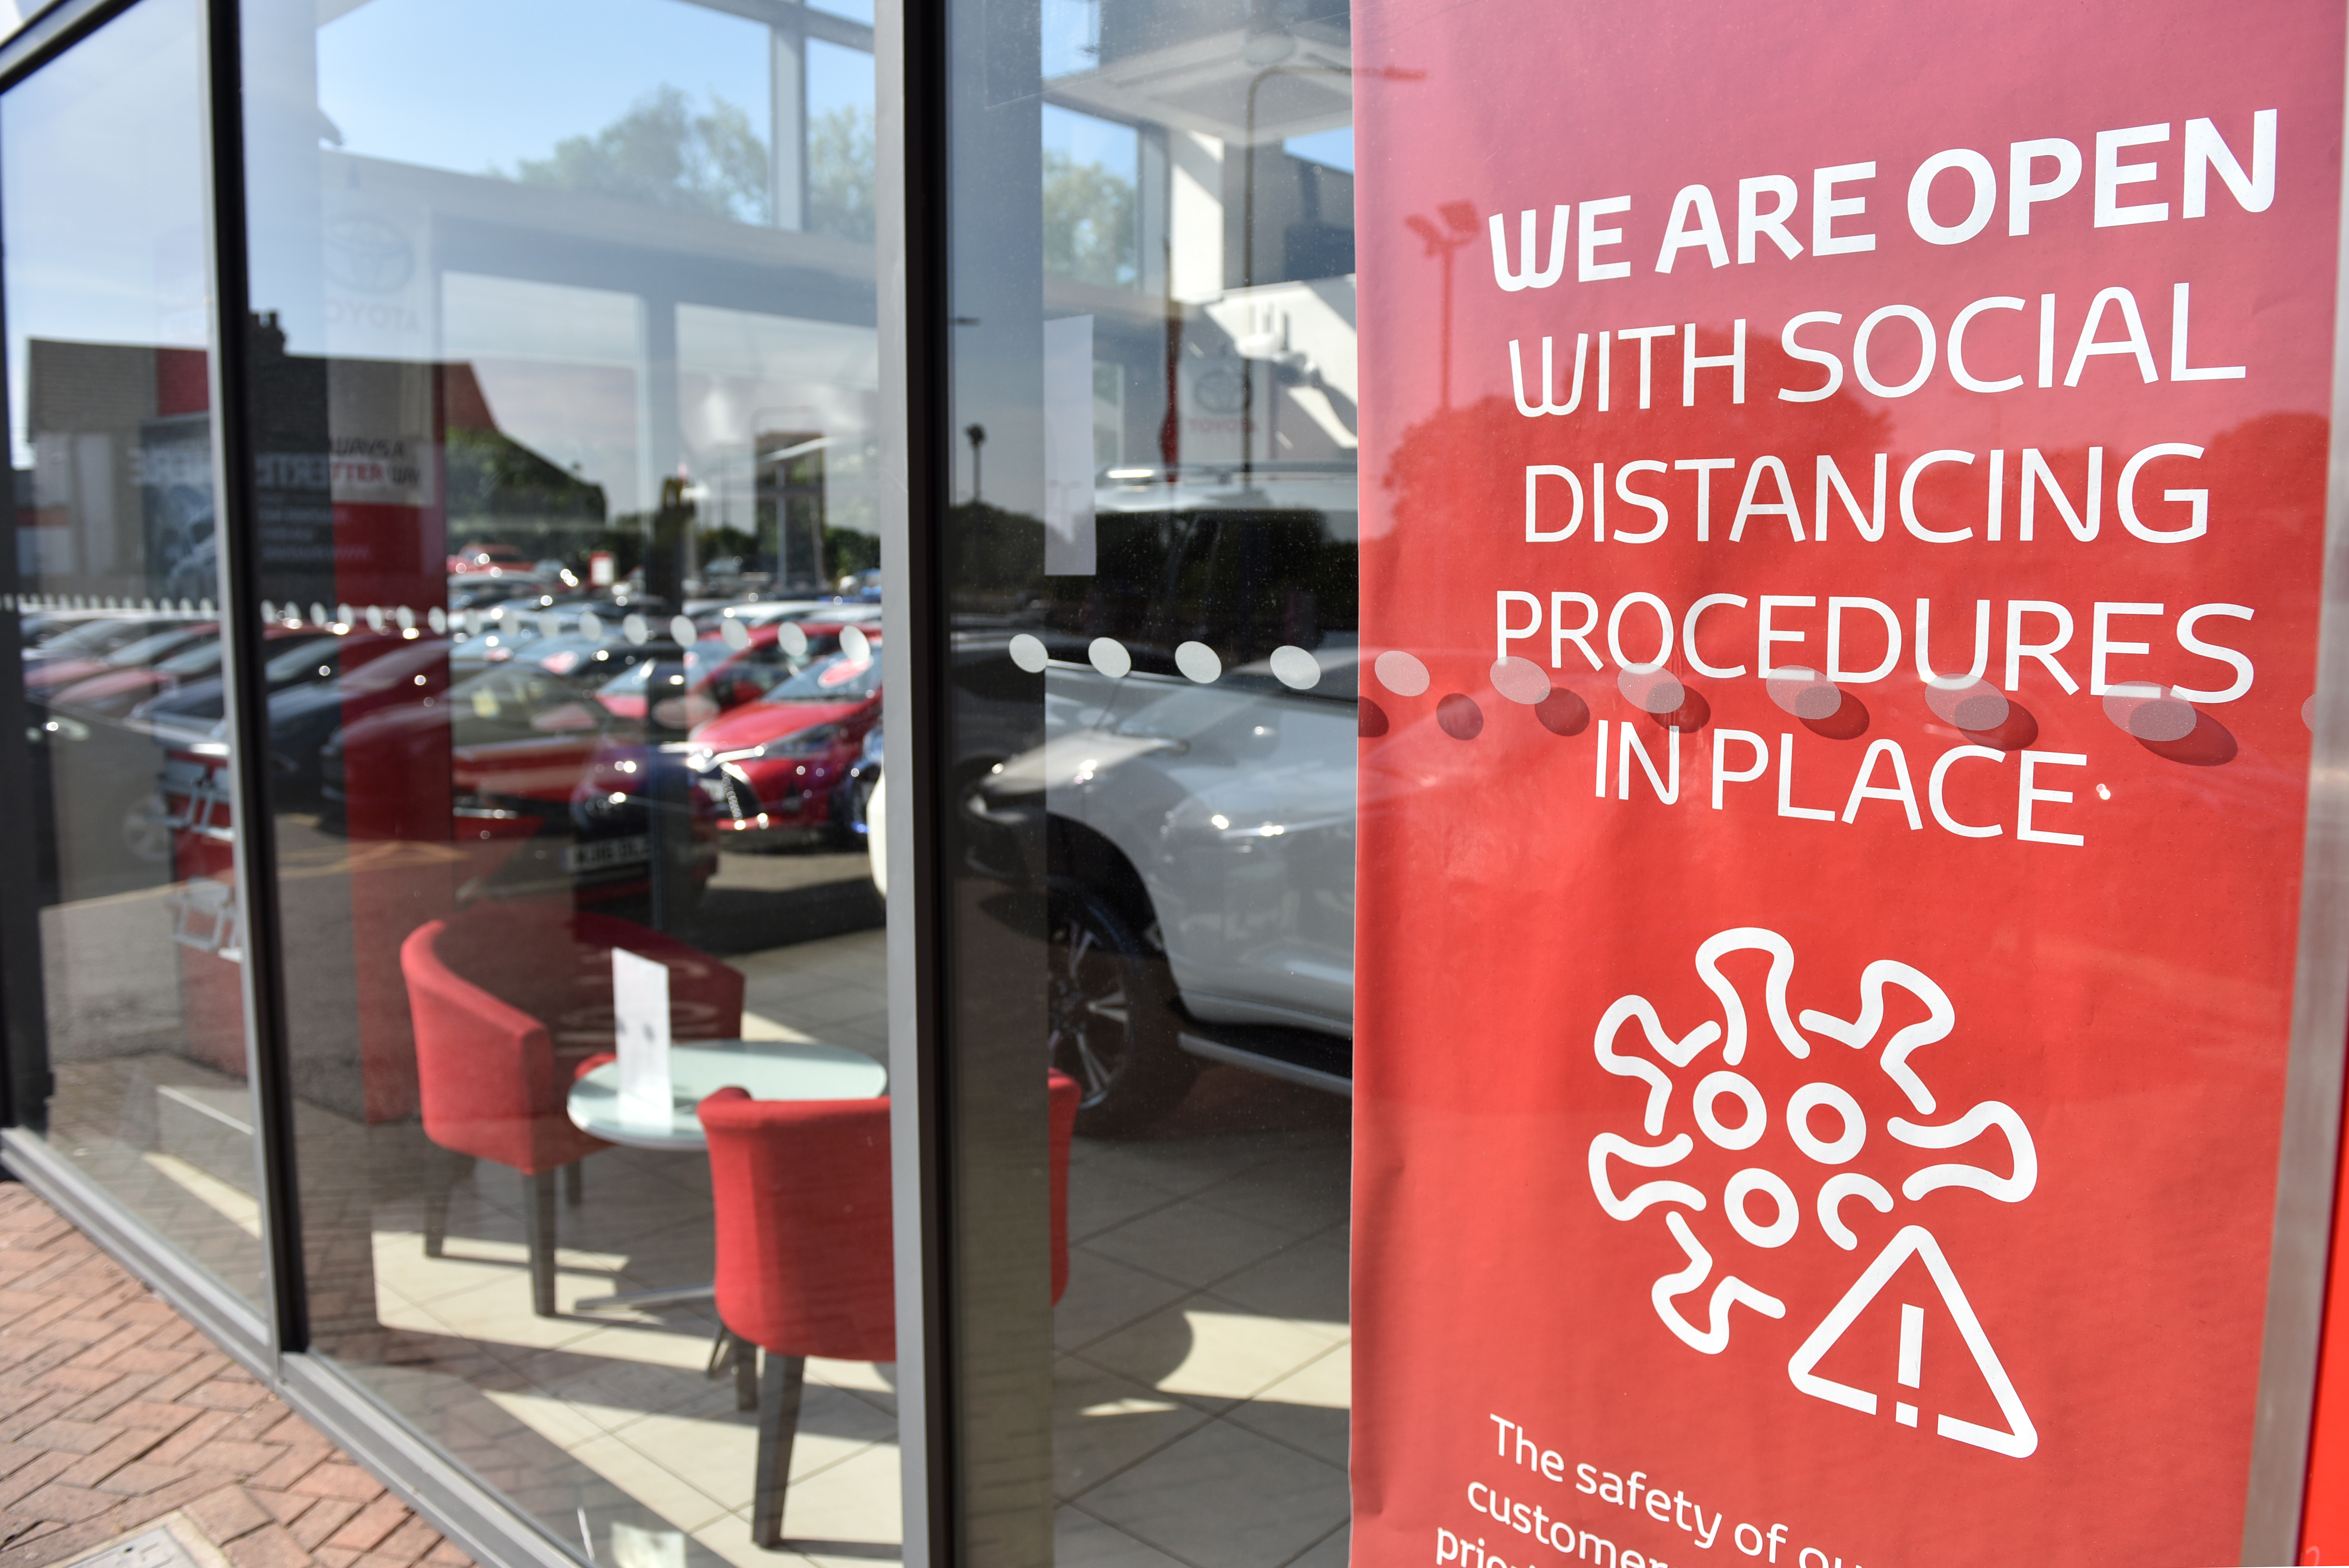 RAYLEIGH, ENGLAND - JUNE 01: Signs with social distancing guidelines in the window of a reopened Toyota car dealership showroom on June 01, 2020 in Rayleigh, England. The British government further relaxed Covid-19 quarantine measures in England this week, allowing groups of six people from different households to meet in parks and gardens, subject to social distancing rules. Many schools also reopened and vulnerable people who are shielding in their homes are allowed to go outside again. (Photo by John Keeble/Getty Images)